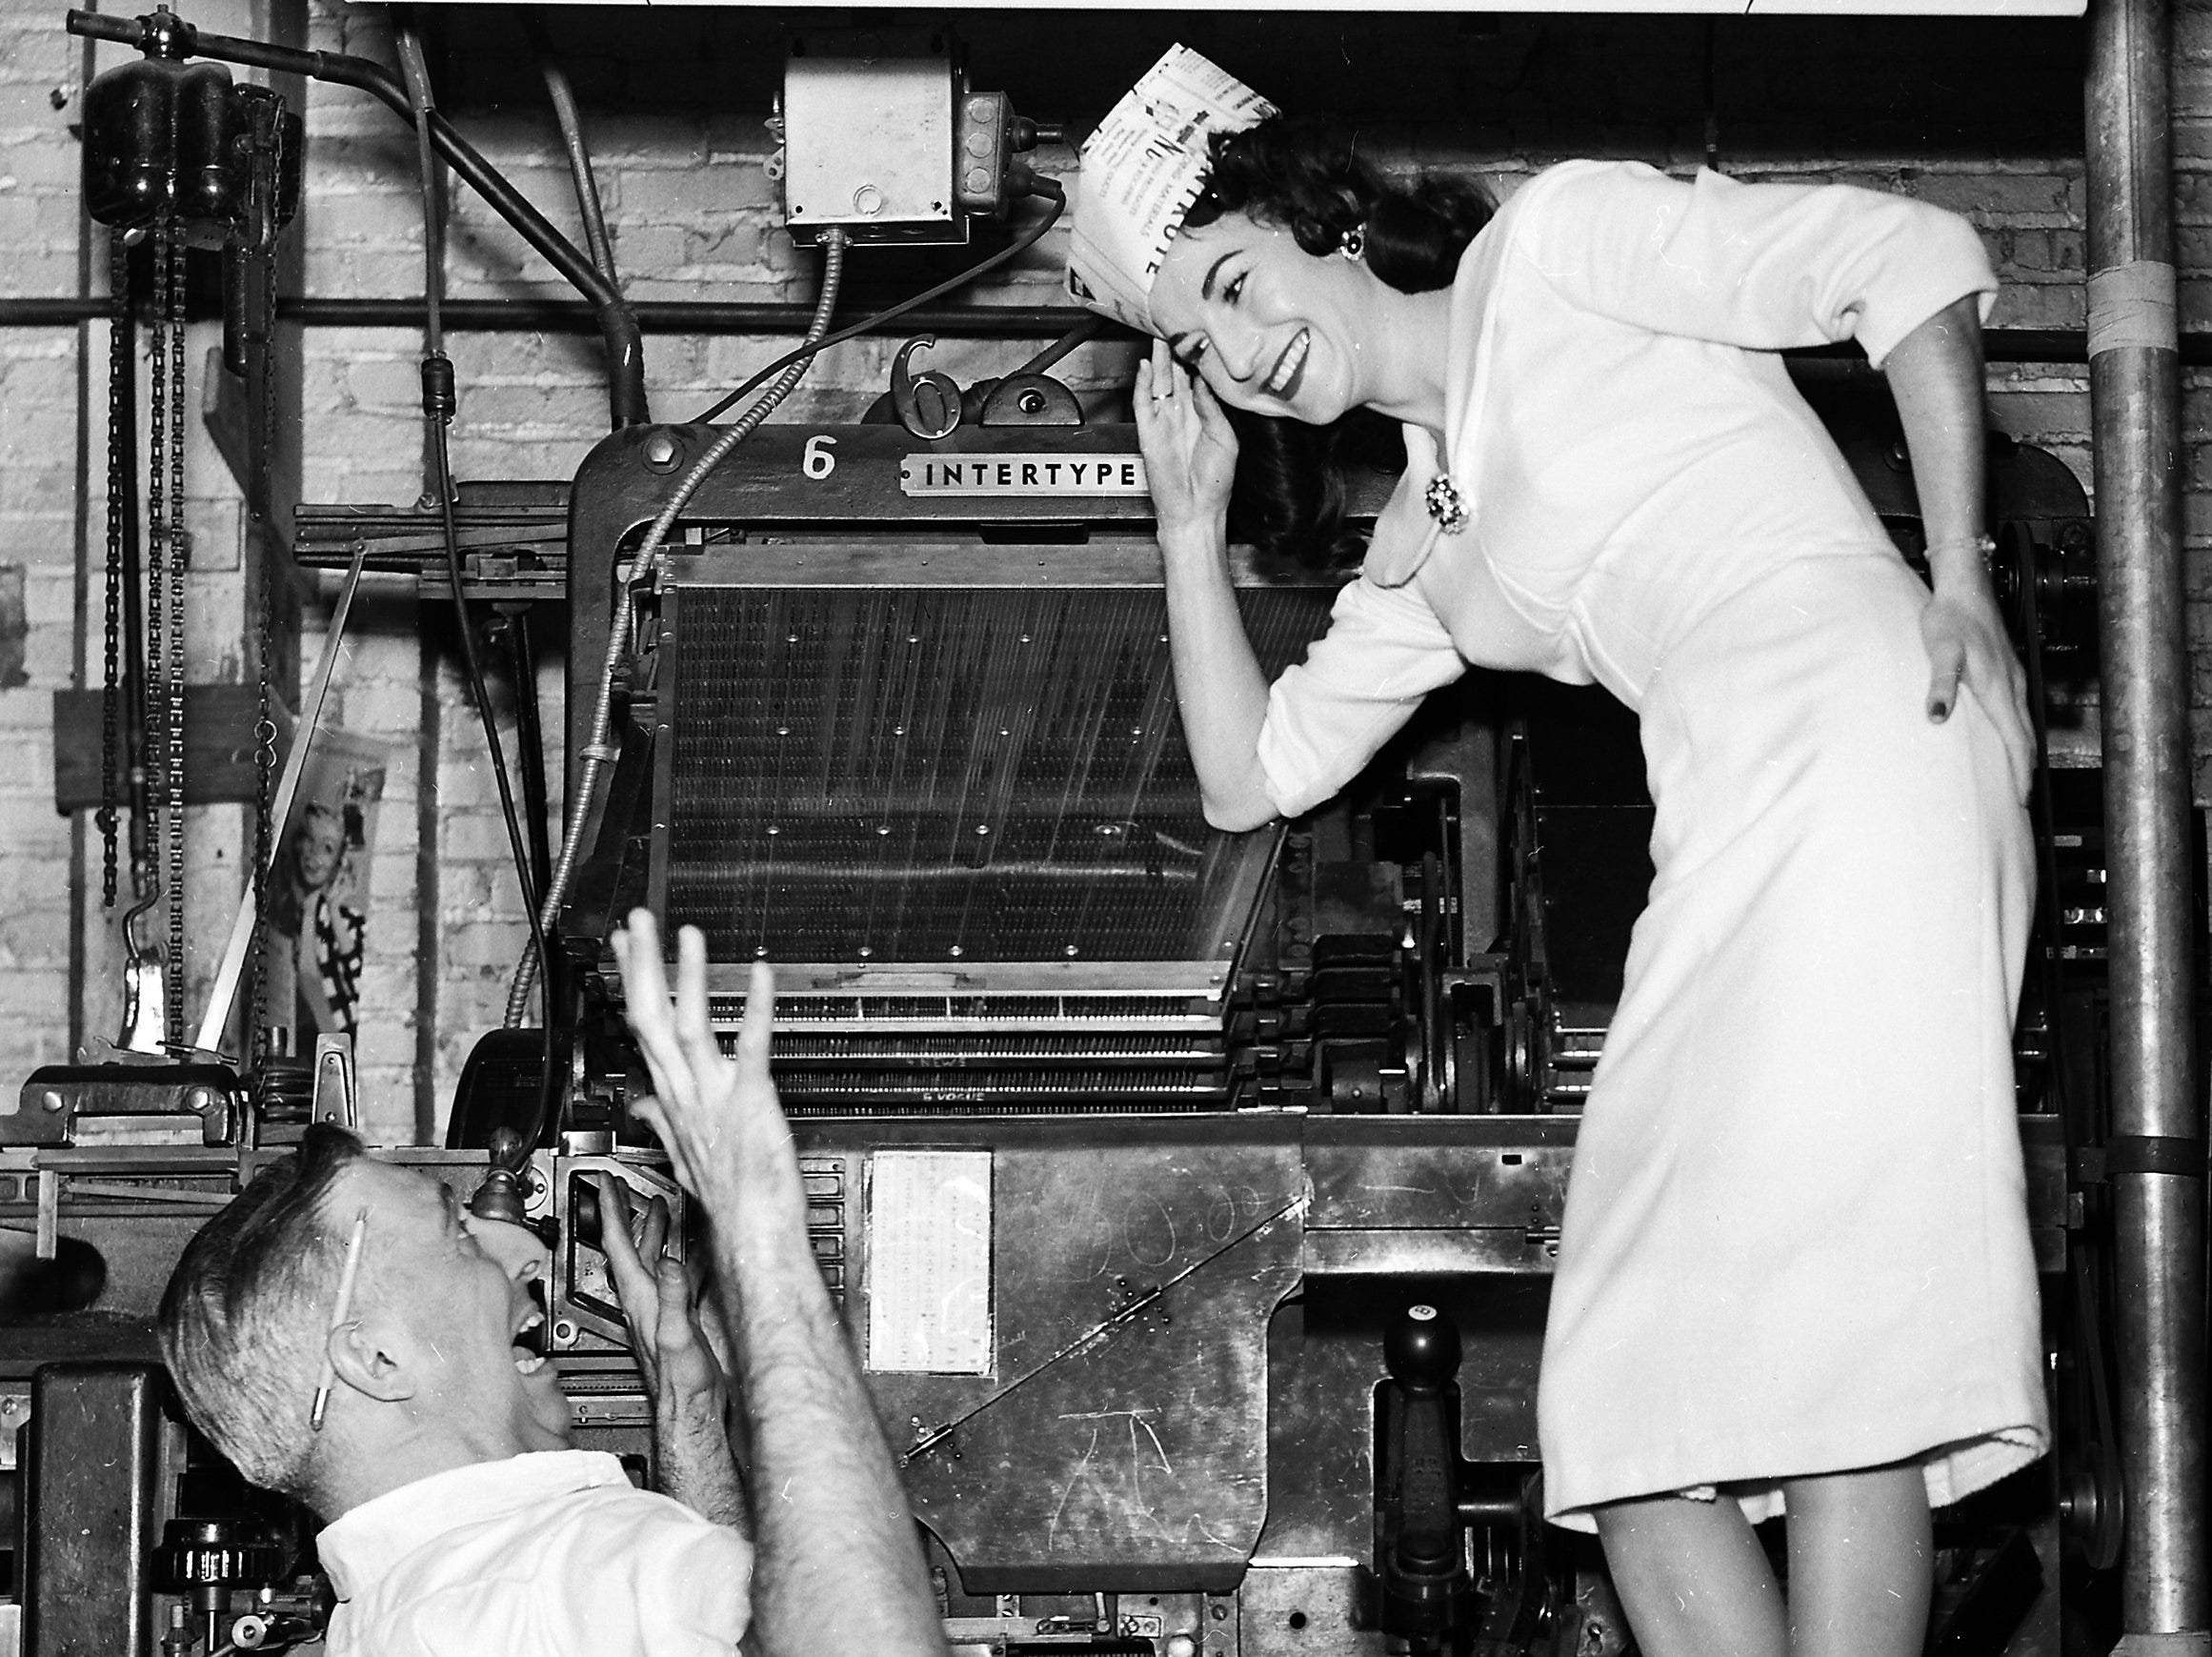 Pleasantly startled was Vince Barba of 138 South Marne when he looked up from his typesetting machind on 9 Jan 1959 to see Miss Edith Smith of 170 North Hollywood saluting him.  She's Miss Printer's Devil for Printing Week Jan 11-17.